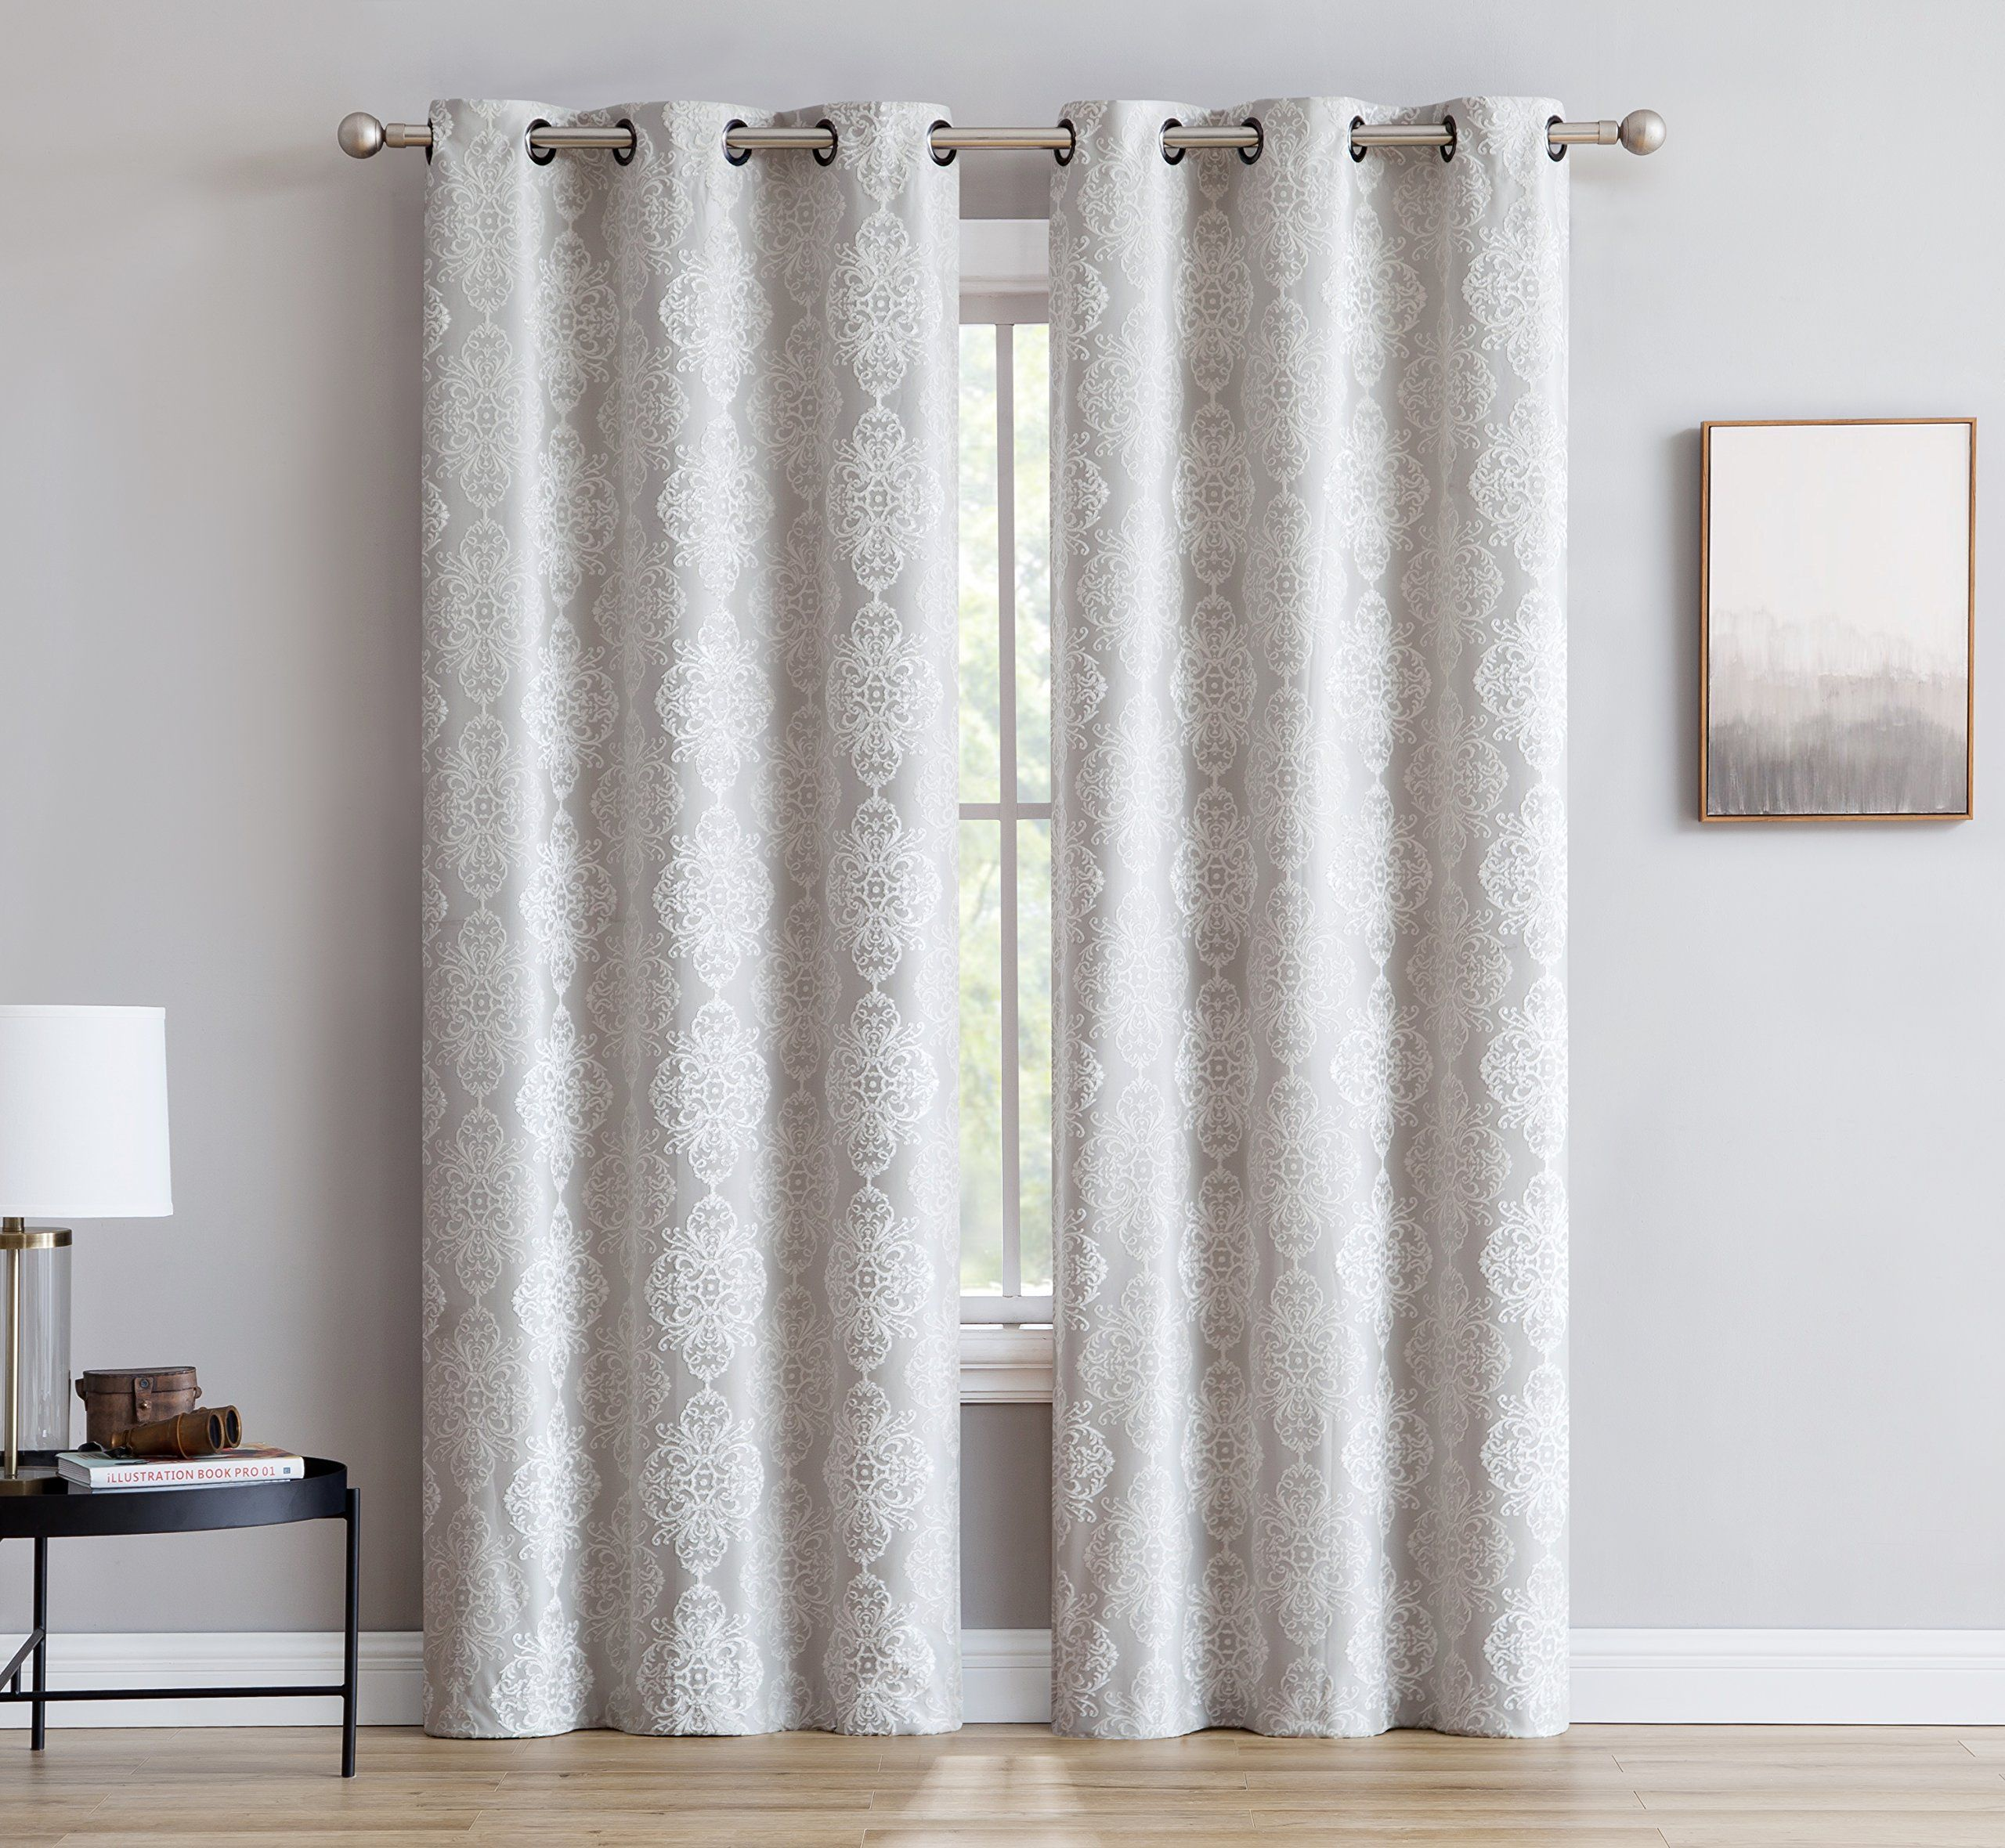 curtains blackout panel eclipse thermal curtain energy com ip efficient samara walmart